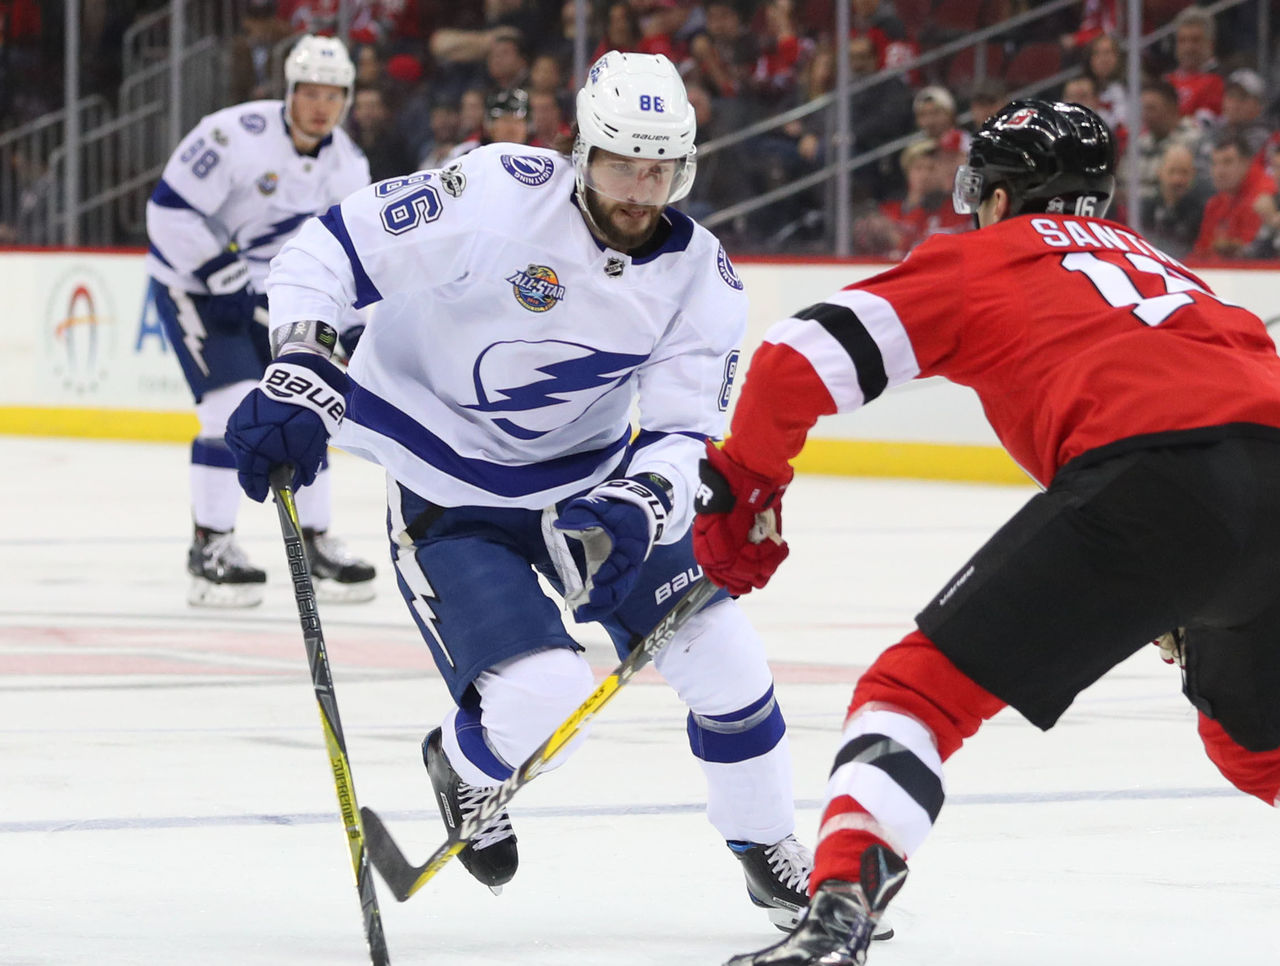 Cropped 2017 10 18t003746z 60292433 nocid rtrmadp 3 nhl tampa bay lightning at new jersey devils